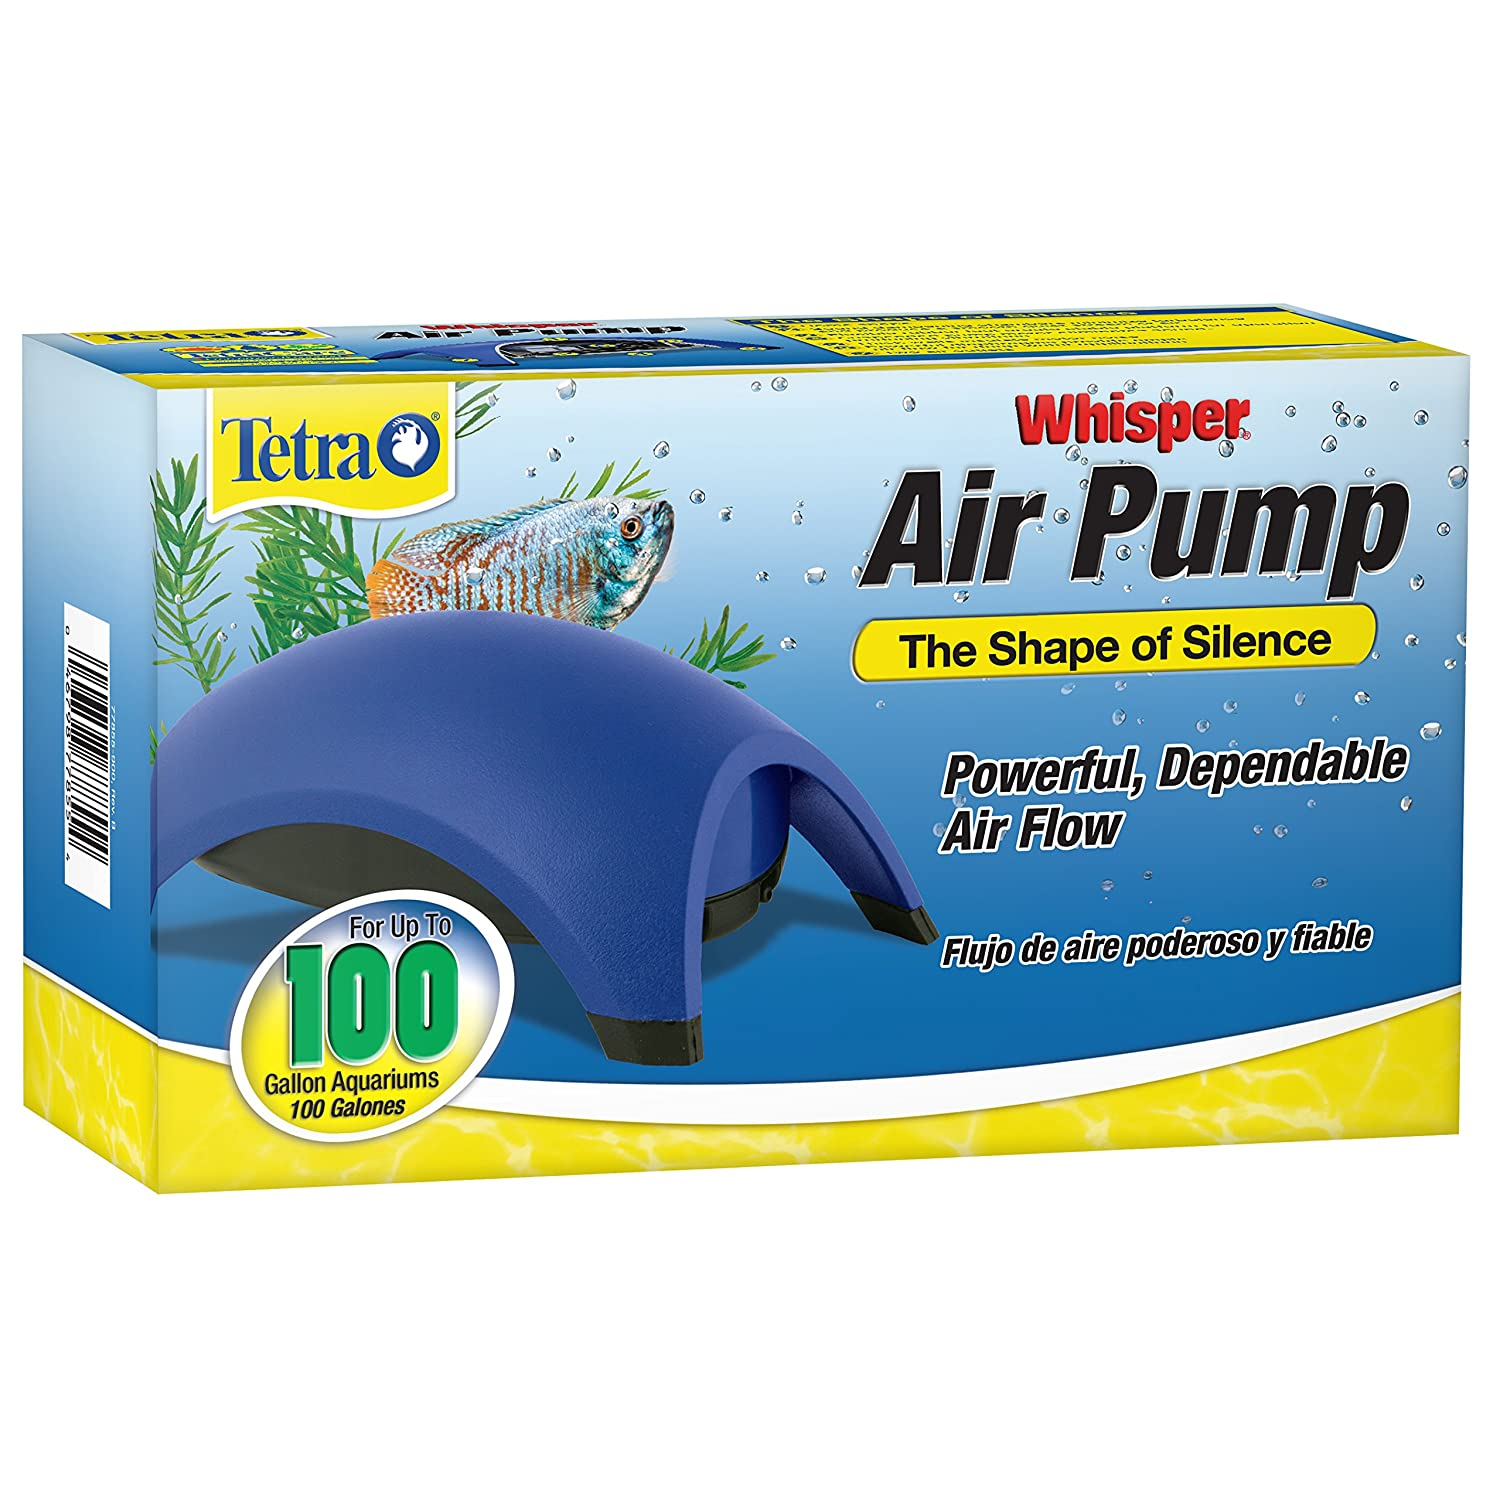 919Nc0VheXL._SL1500_ amazon com tetra 77855 whisper air pump, 100 gallon aquarium  at honlapkeszites.co